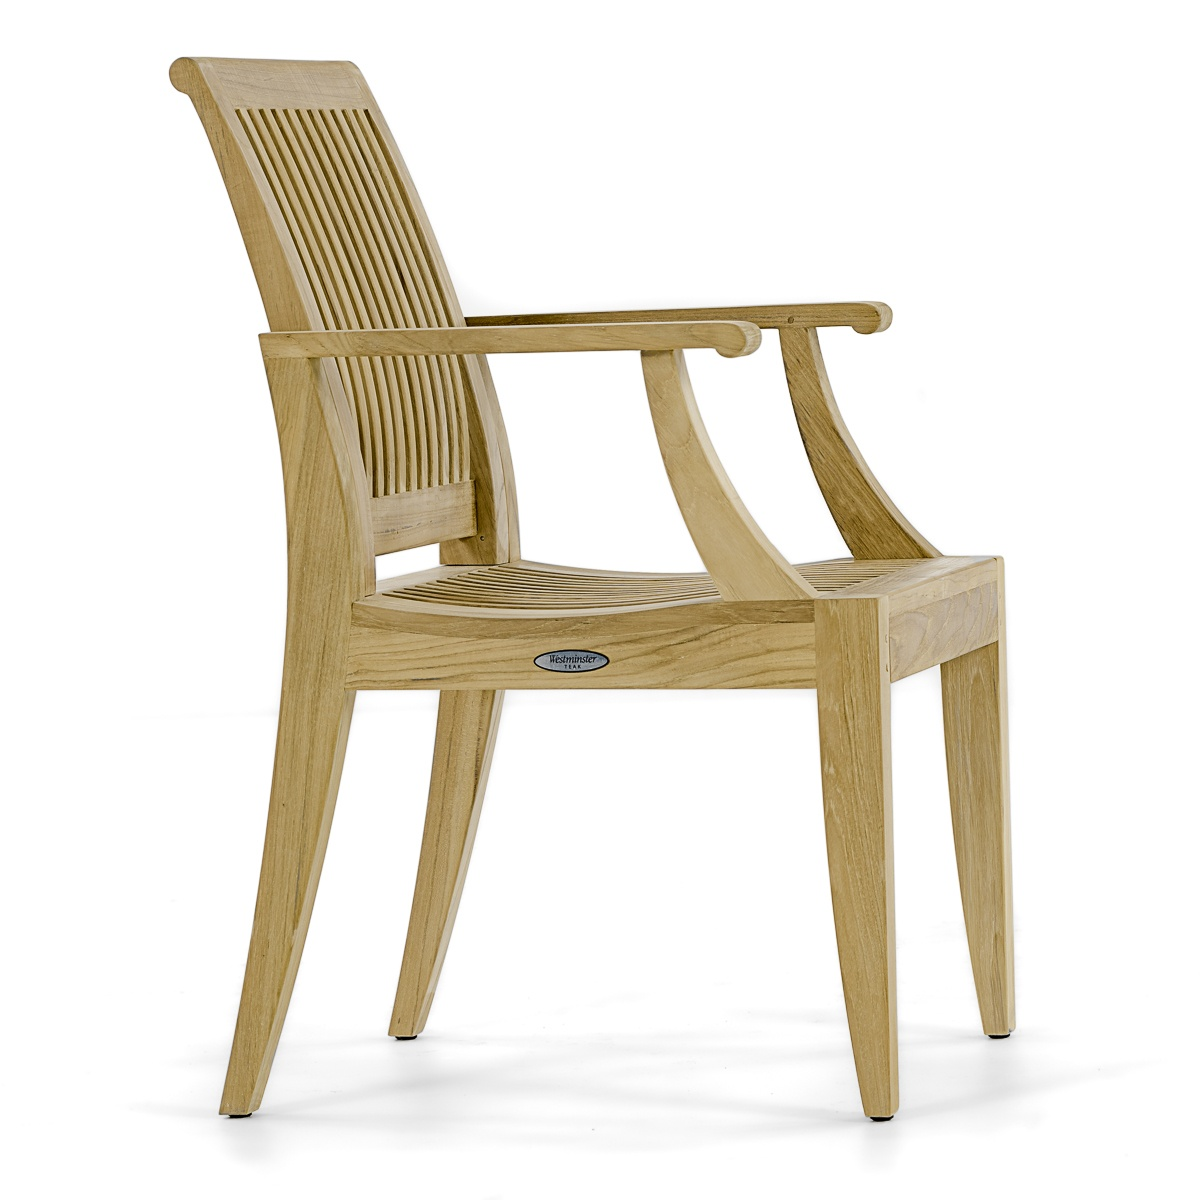 Laguna Teak Wood Dining Chair With Arms Westminster Teak